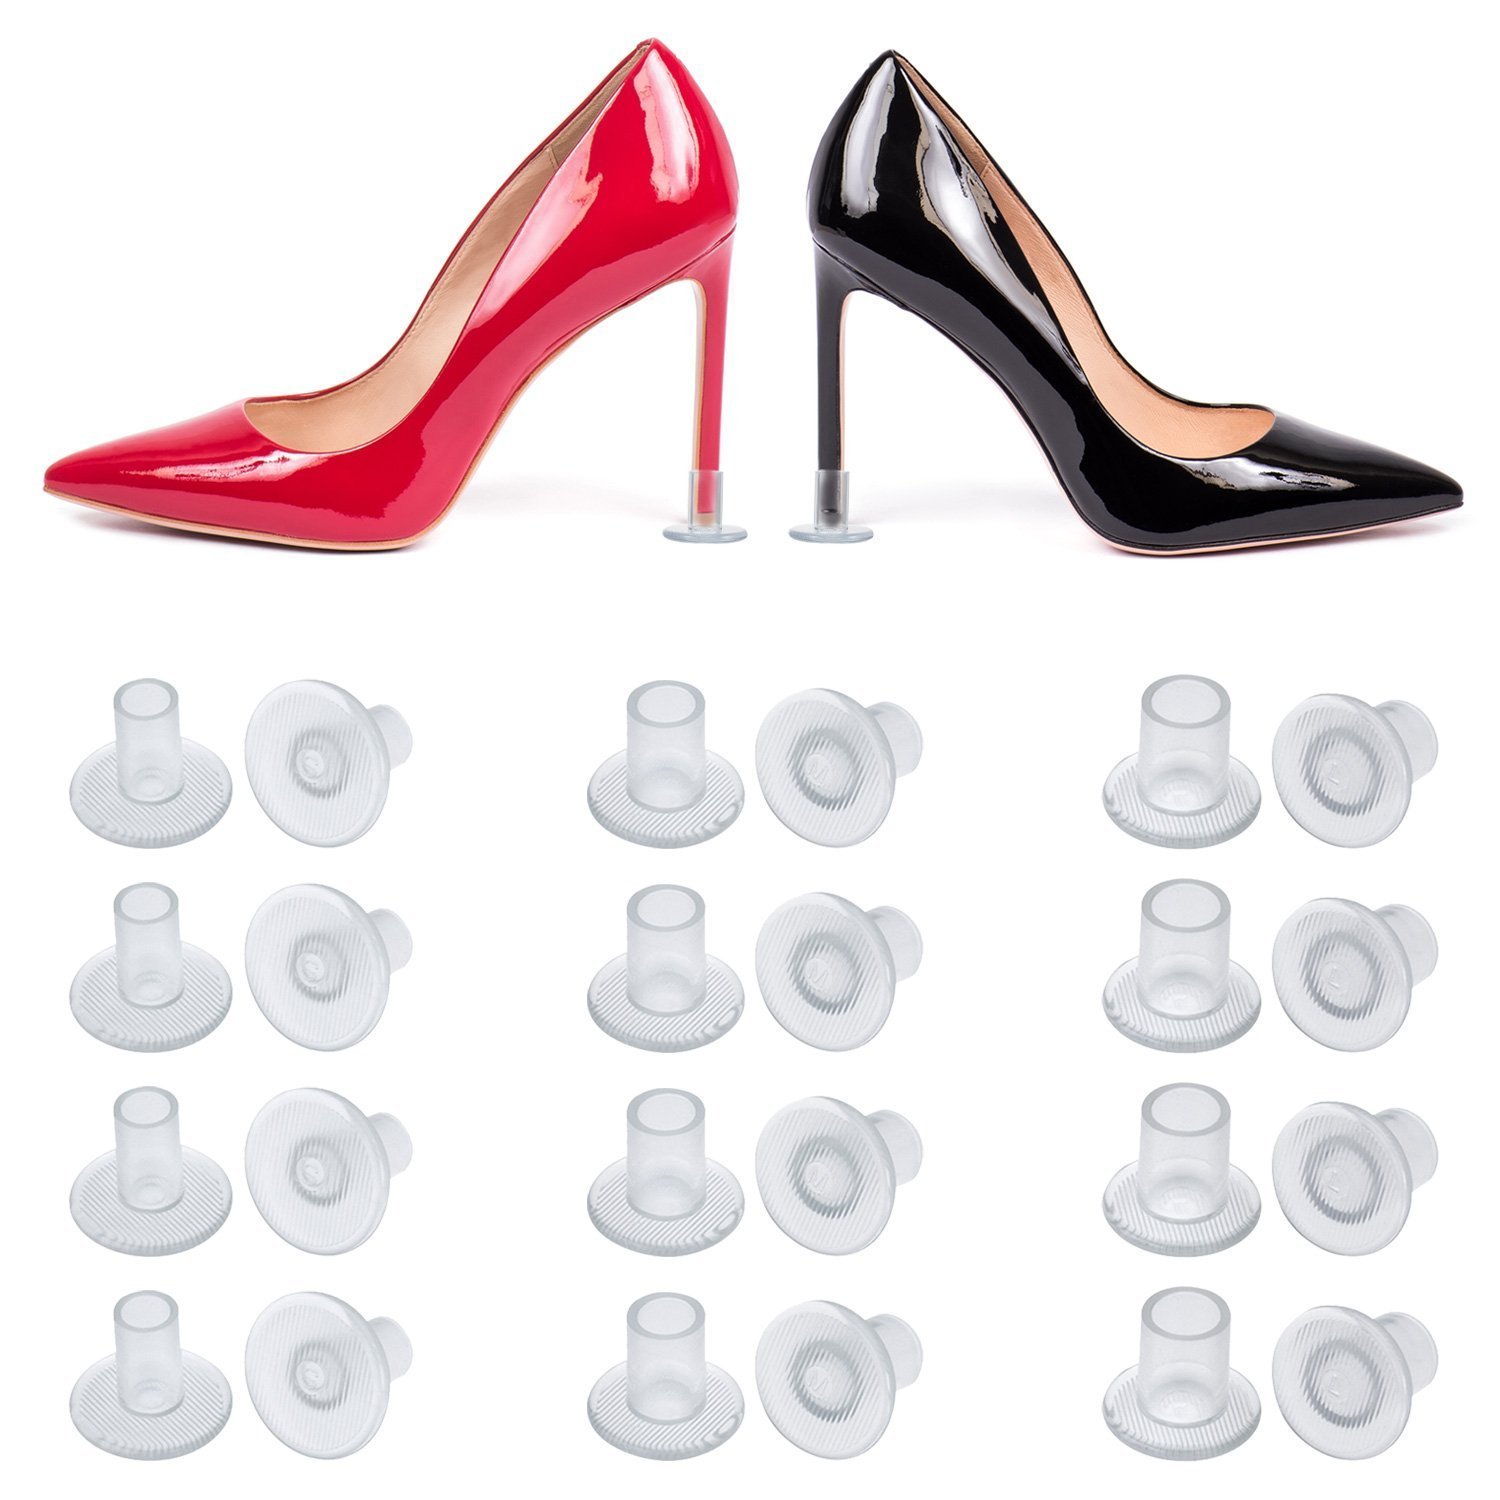 1ced46de7e 24 Pairs High Heel Protectors Clear Heel Stoppers for Wedding or ...